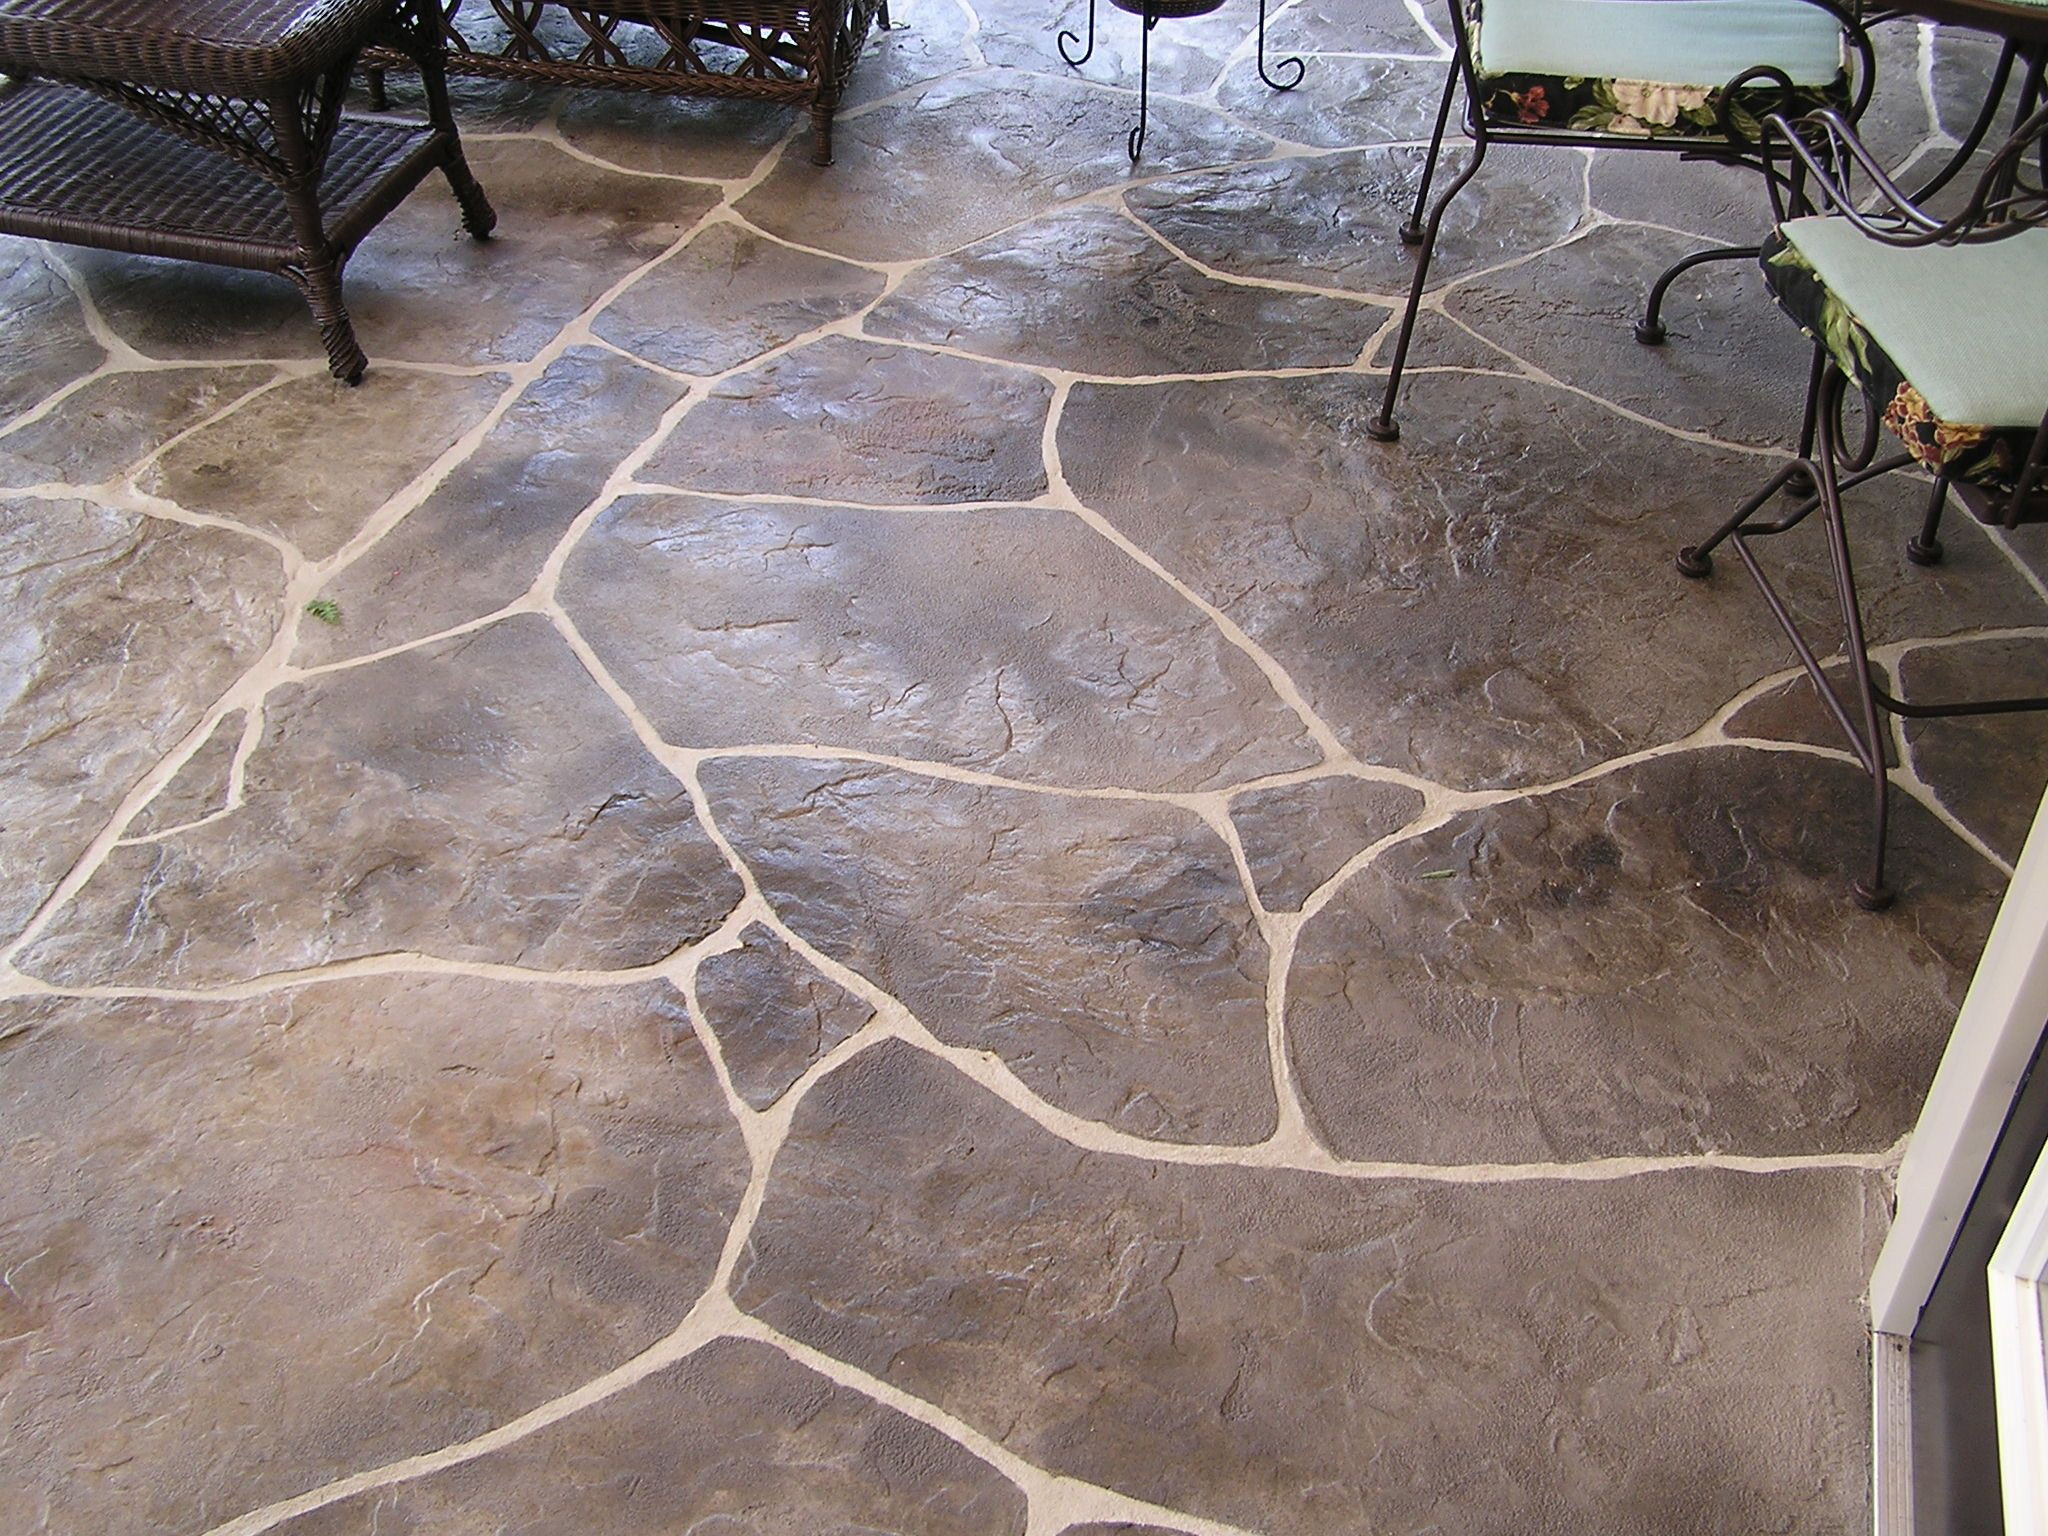 Stamped Concrete Design Ideas traditional stamped concrete patio ideas with traditional round rock fire pit also wooden pillars also adorable green field and garden plants st Stamped Concrete Patio Designs Concrete Davinci Stamped Asphalt Concrete Restoration Epoxy